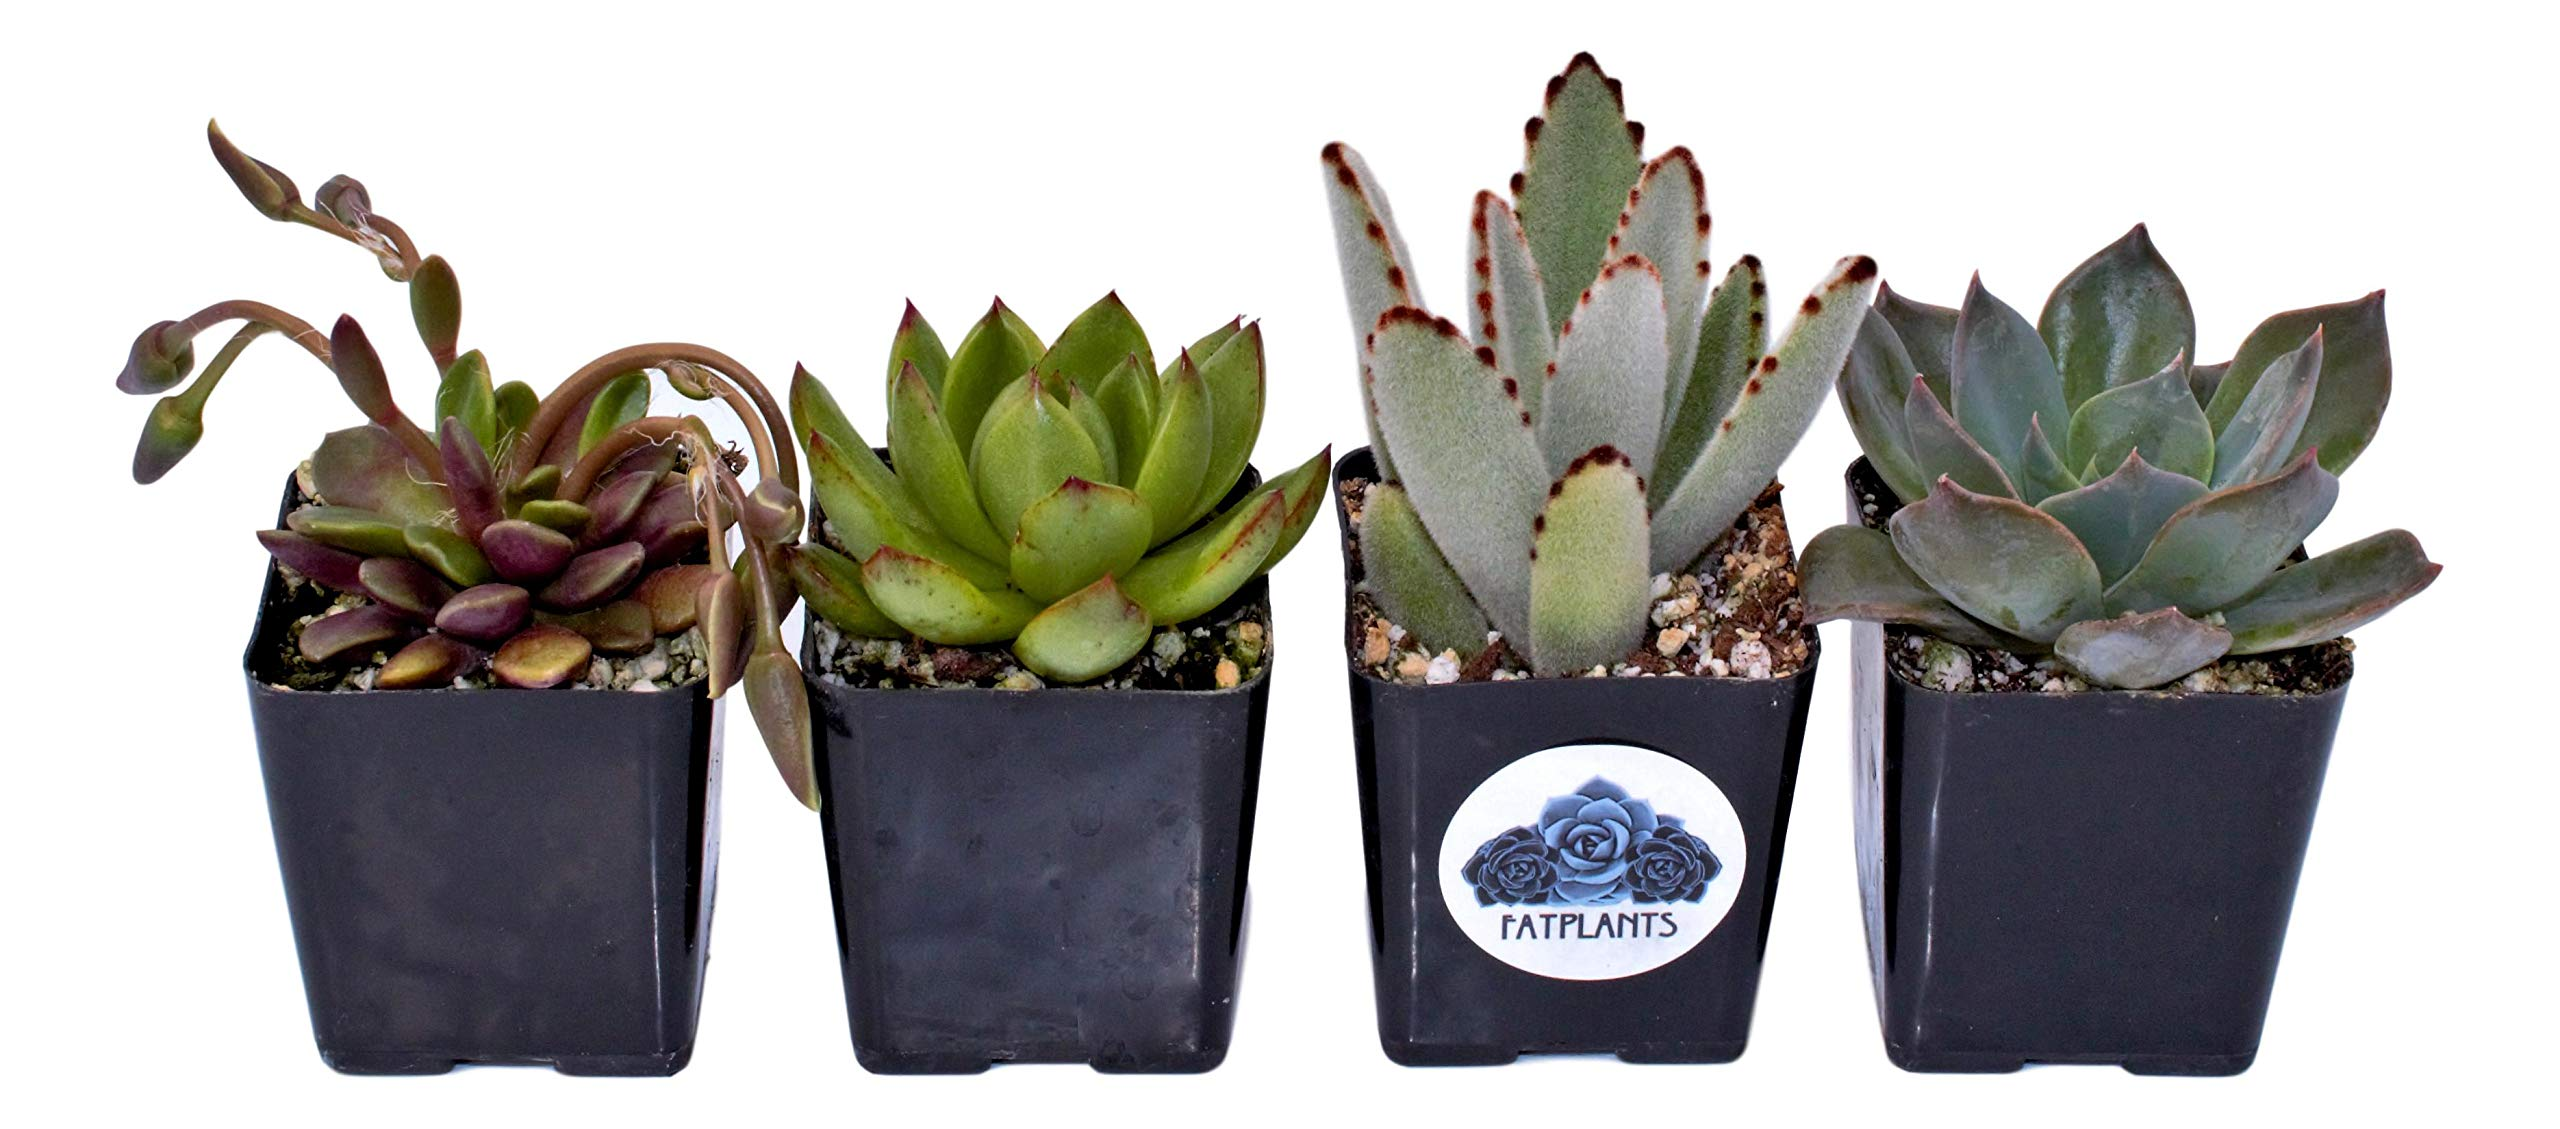 Fat Plants San Diego Premium Succulent Plant Variety Package. Live Indoor Succulents Rooted in Soil in a Plastic Growers Pot (4) by Fat Plants San Diego